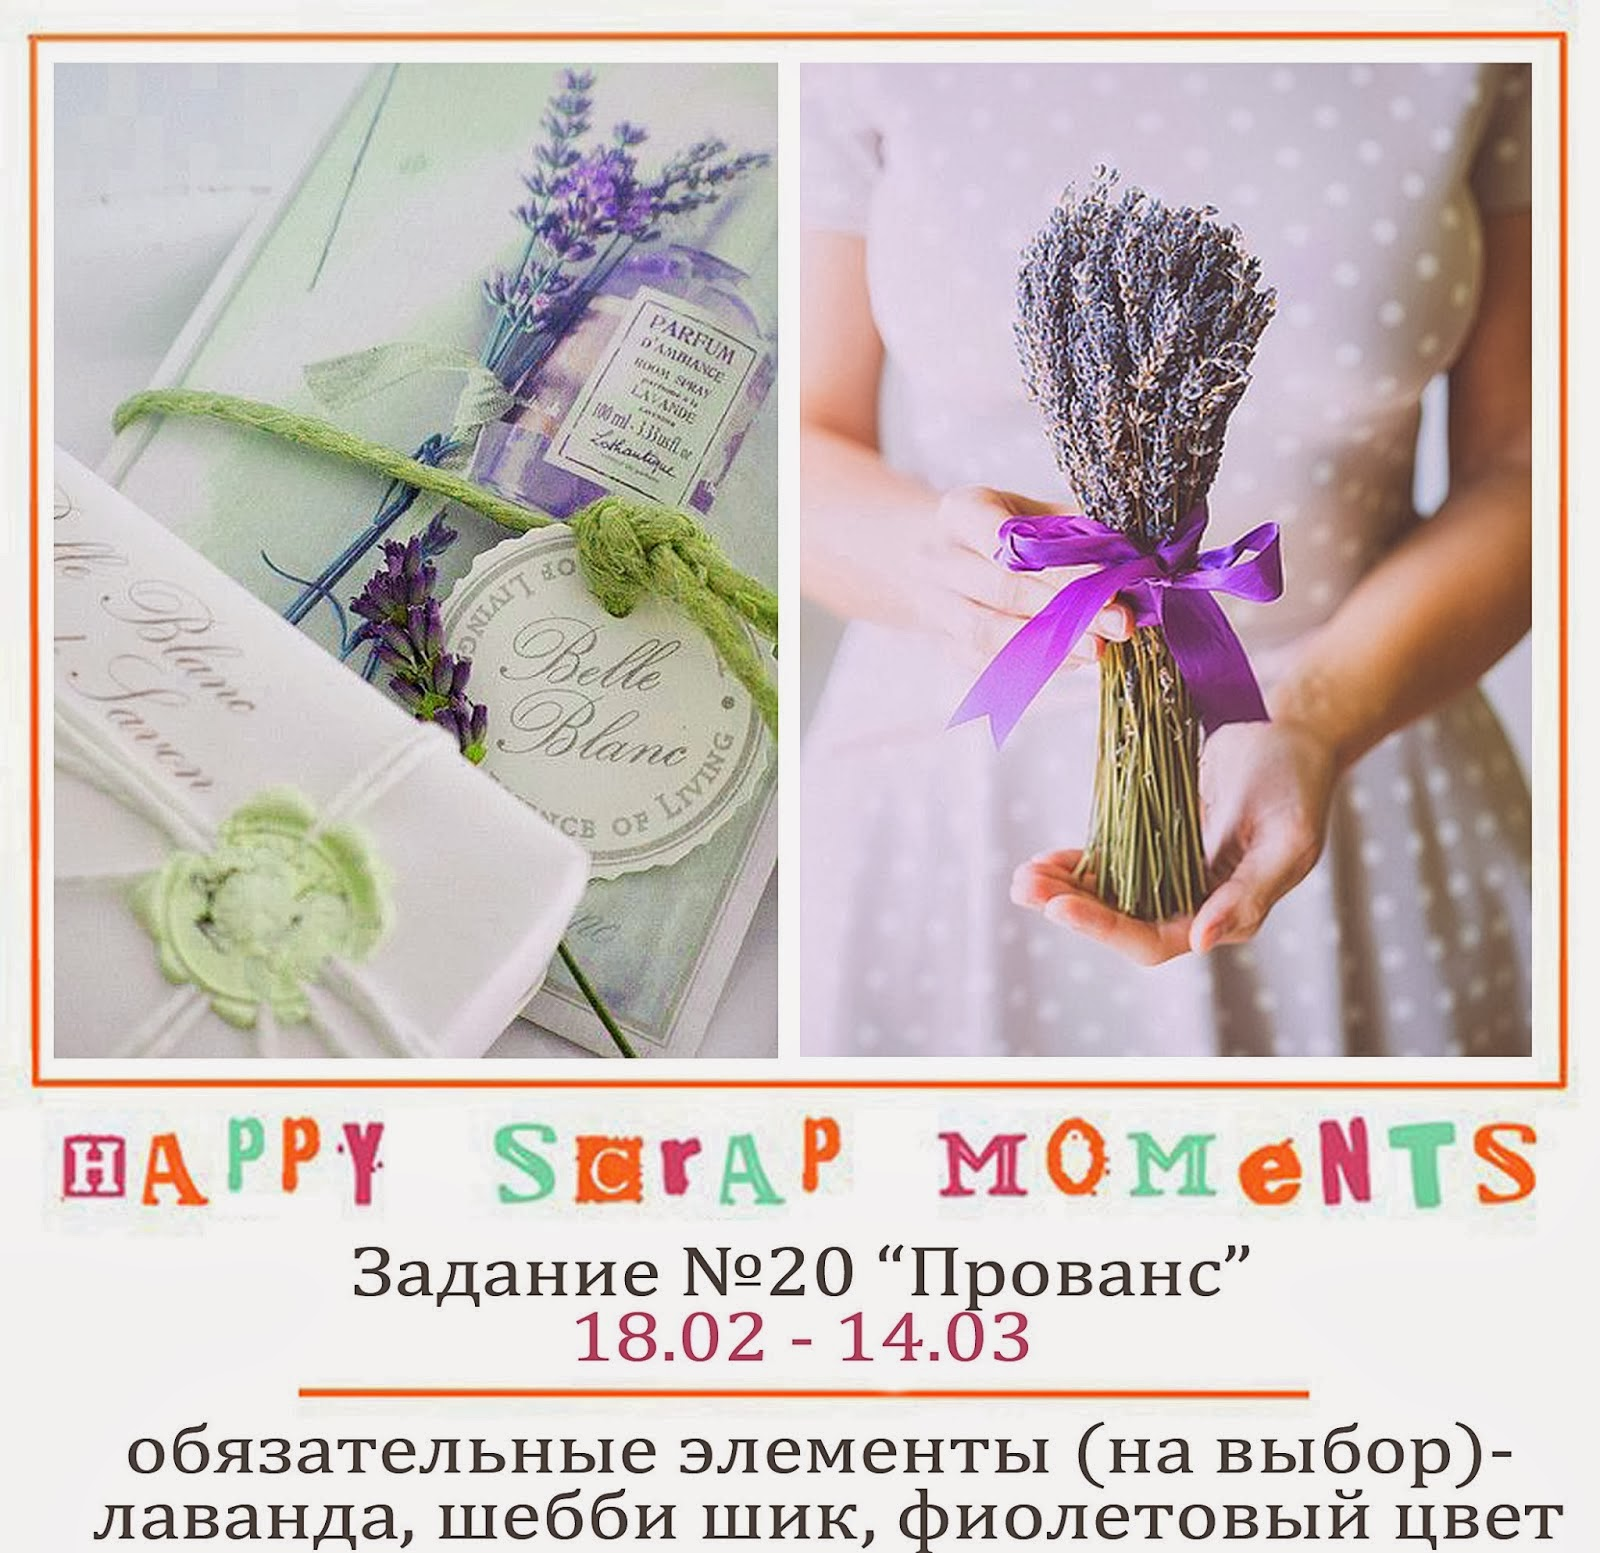 http://happyscrapmoments.blogspot.ru/2014/02/20_17.html